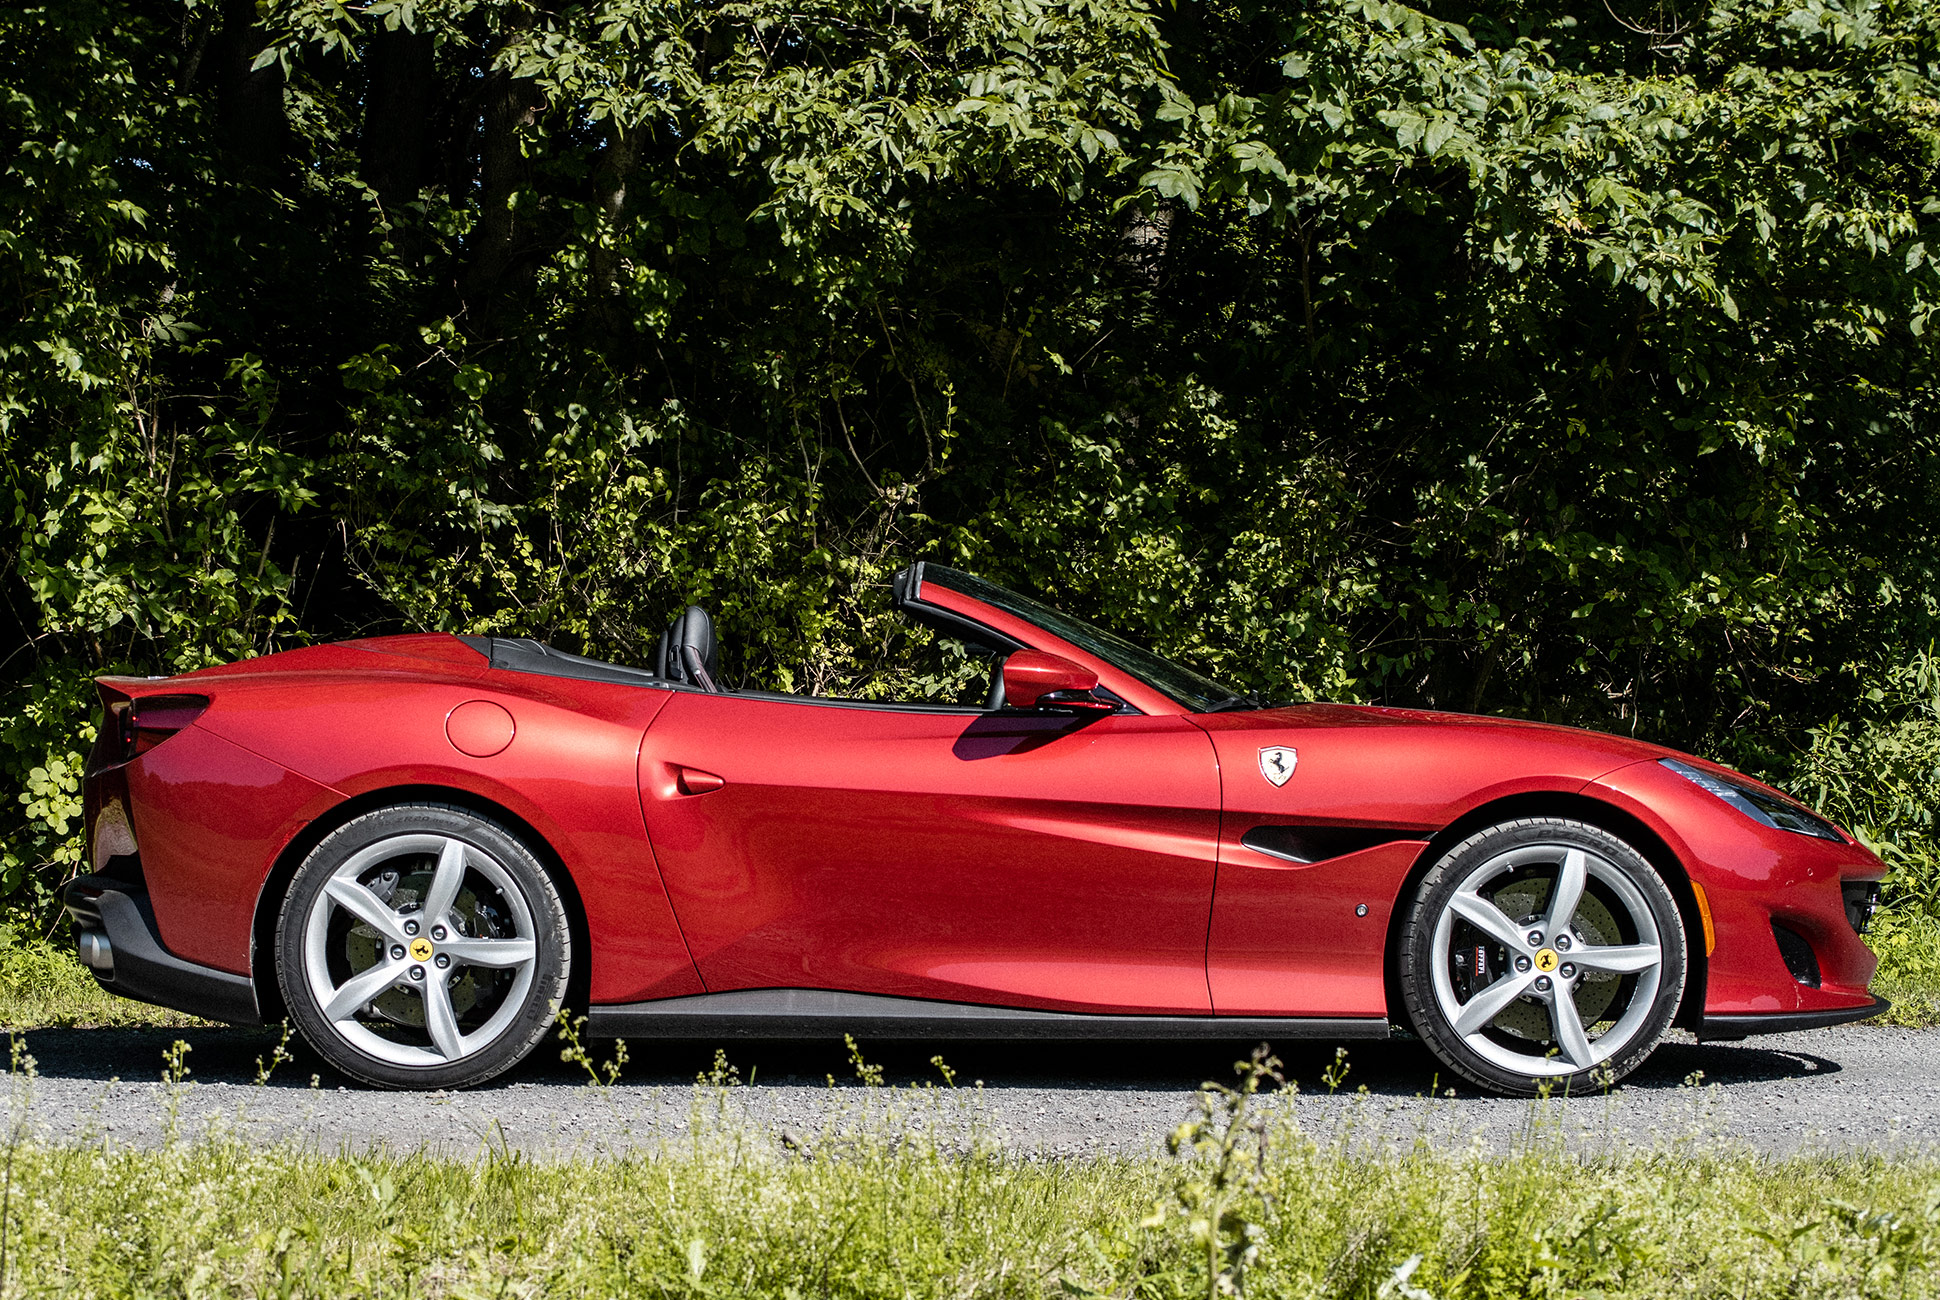 2019 ferrari portofino review every bit a ferrari in the ways that matter 1